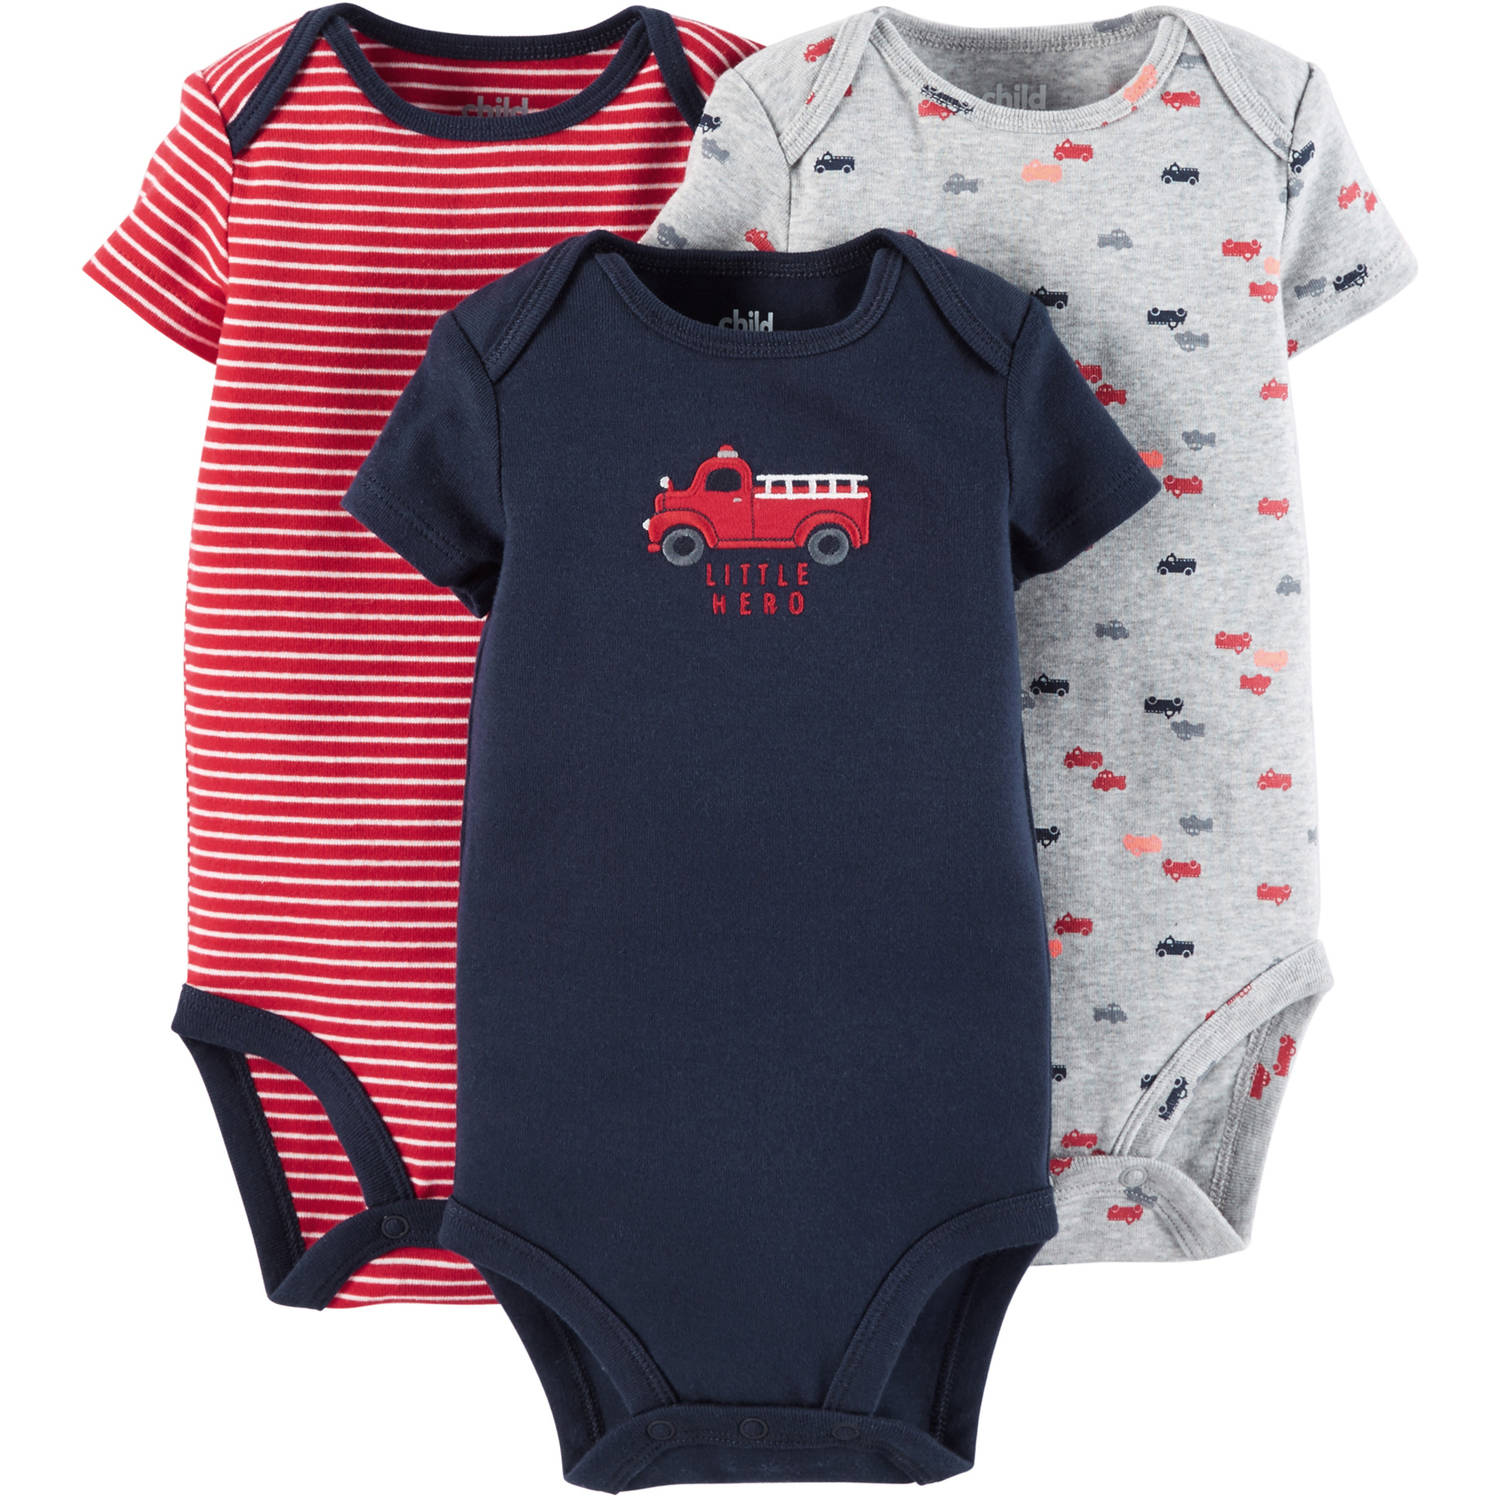 The cutest Onesies® Bodysuits are ready and waiting for your baby boy at Gerber Childrenswear. Choose from our fun and stylish selection of long or short sleeve shirts, sleepwear, and playwear for newborns. FREE SHIPPING on $50+.